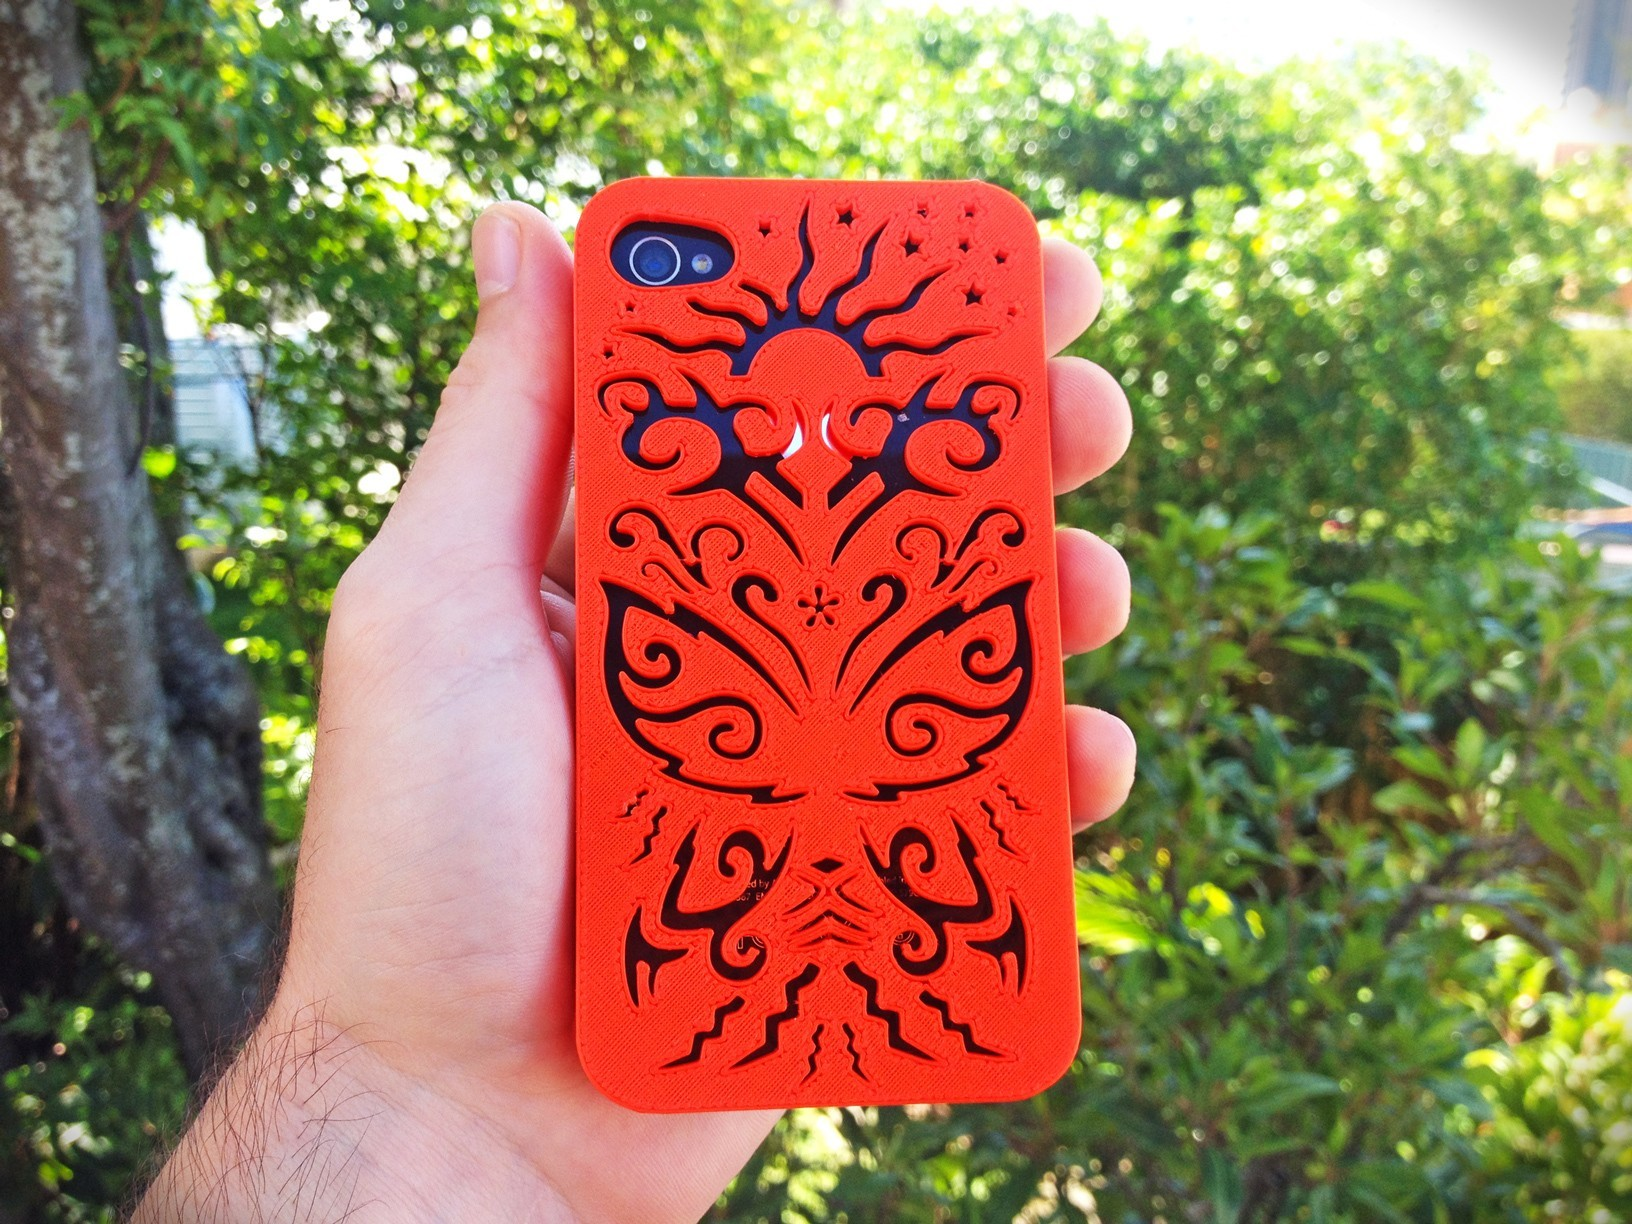 butterfly-Iphone-case-4-4s.jpg Download STL file Butterfly Iphone Case 4 4s • Object to 3D print, Custom3DPrinting